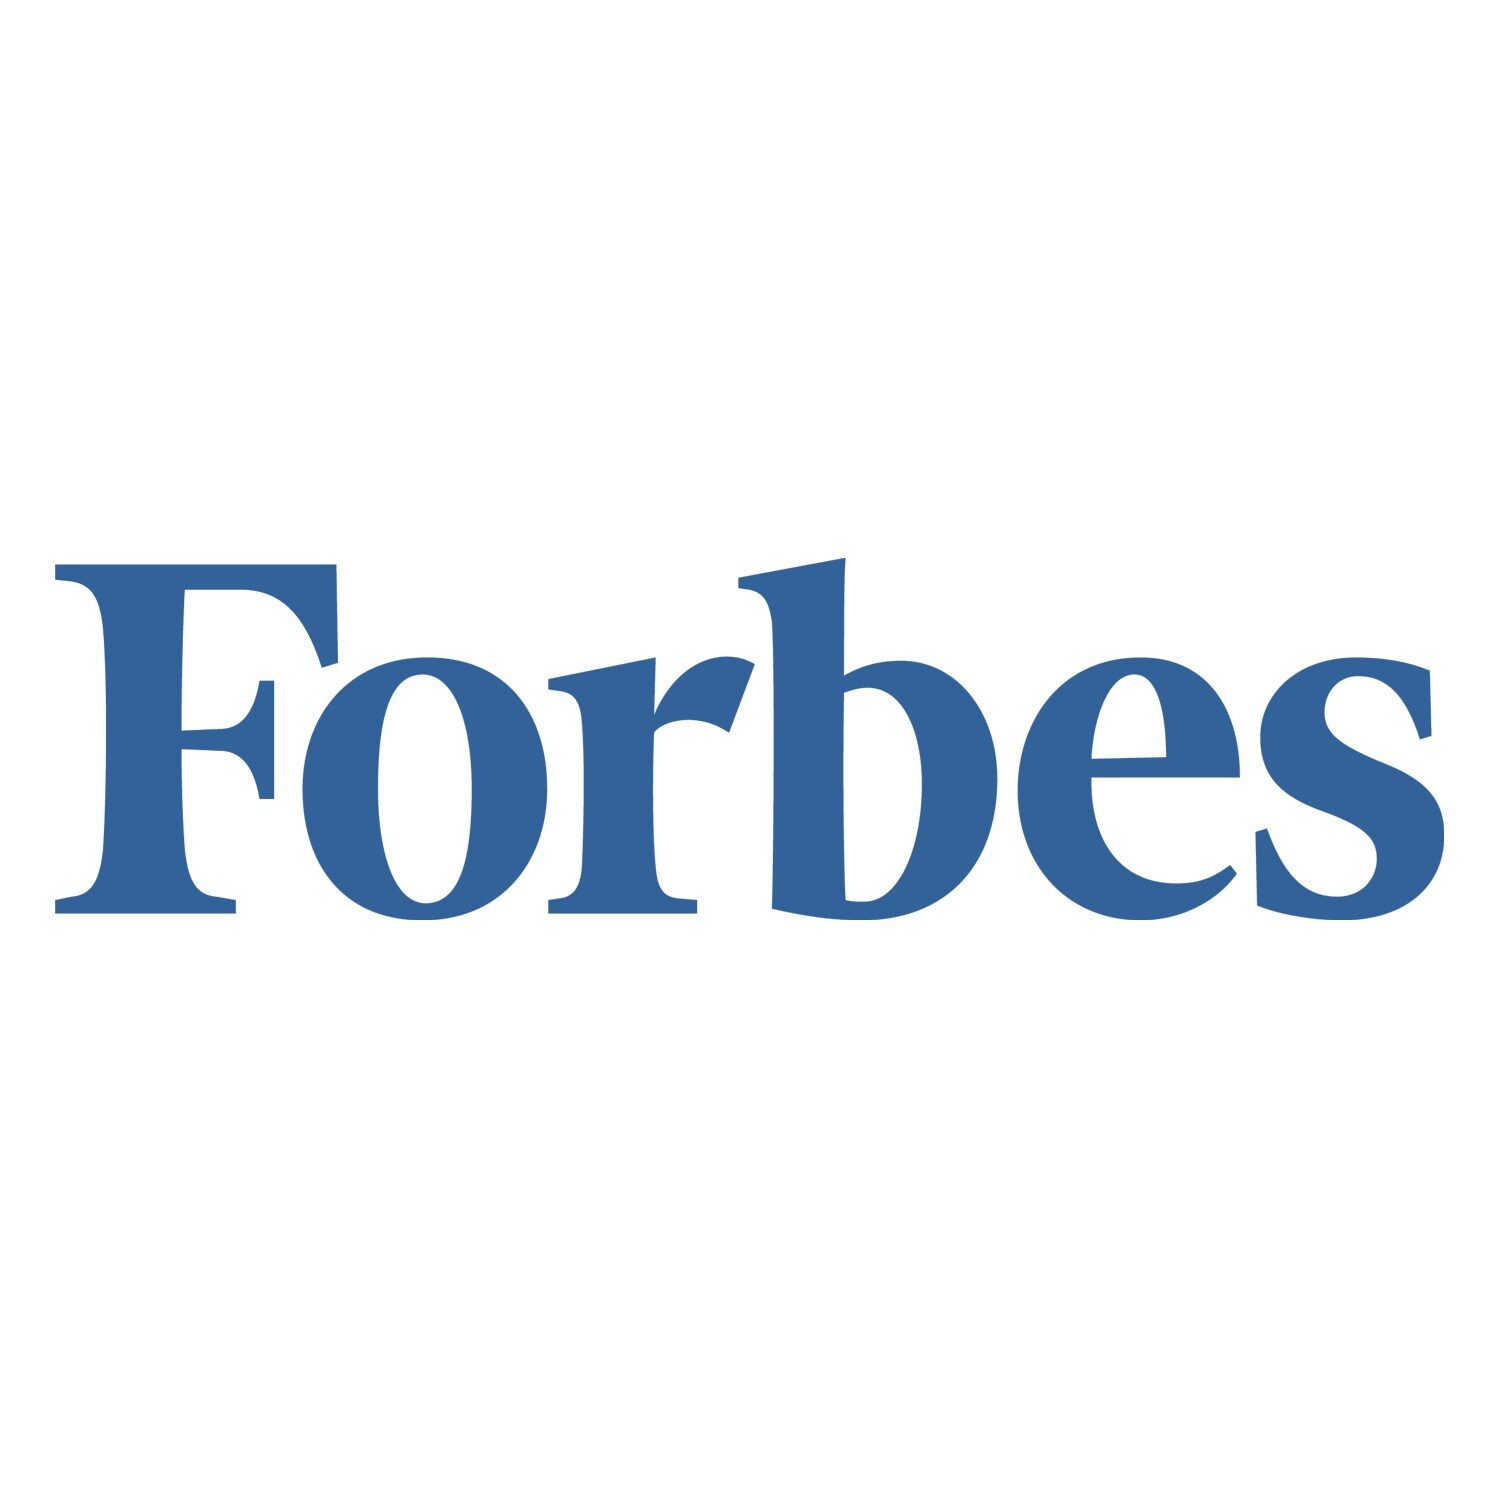 Images with Forbes